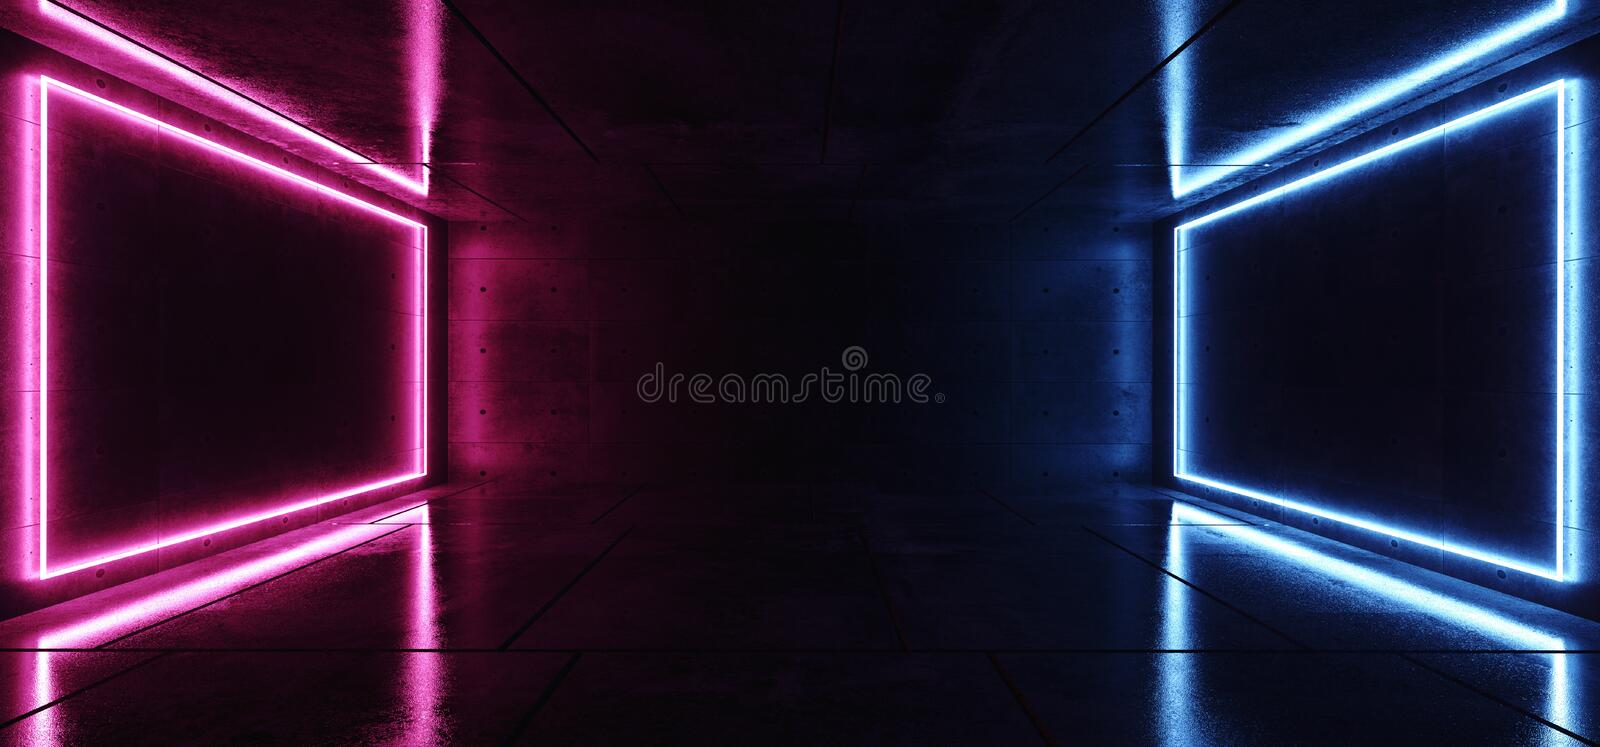 Modern Elegant Futuristic Neon Blue Purple Pink Glowing Rectangle Lights In Dark Empty For Text Room Grunge Reflective Concrete. Background 3D Rendering vector illustration